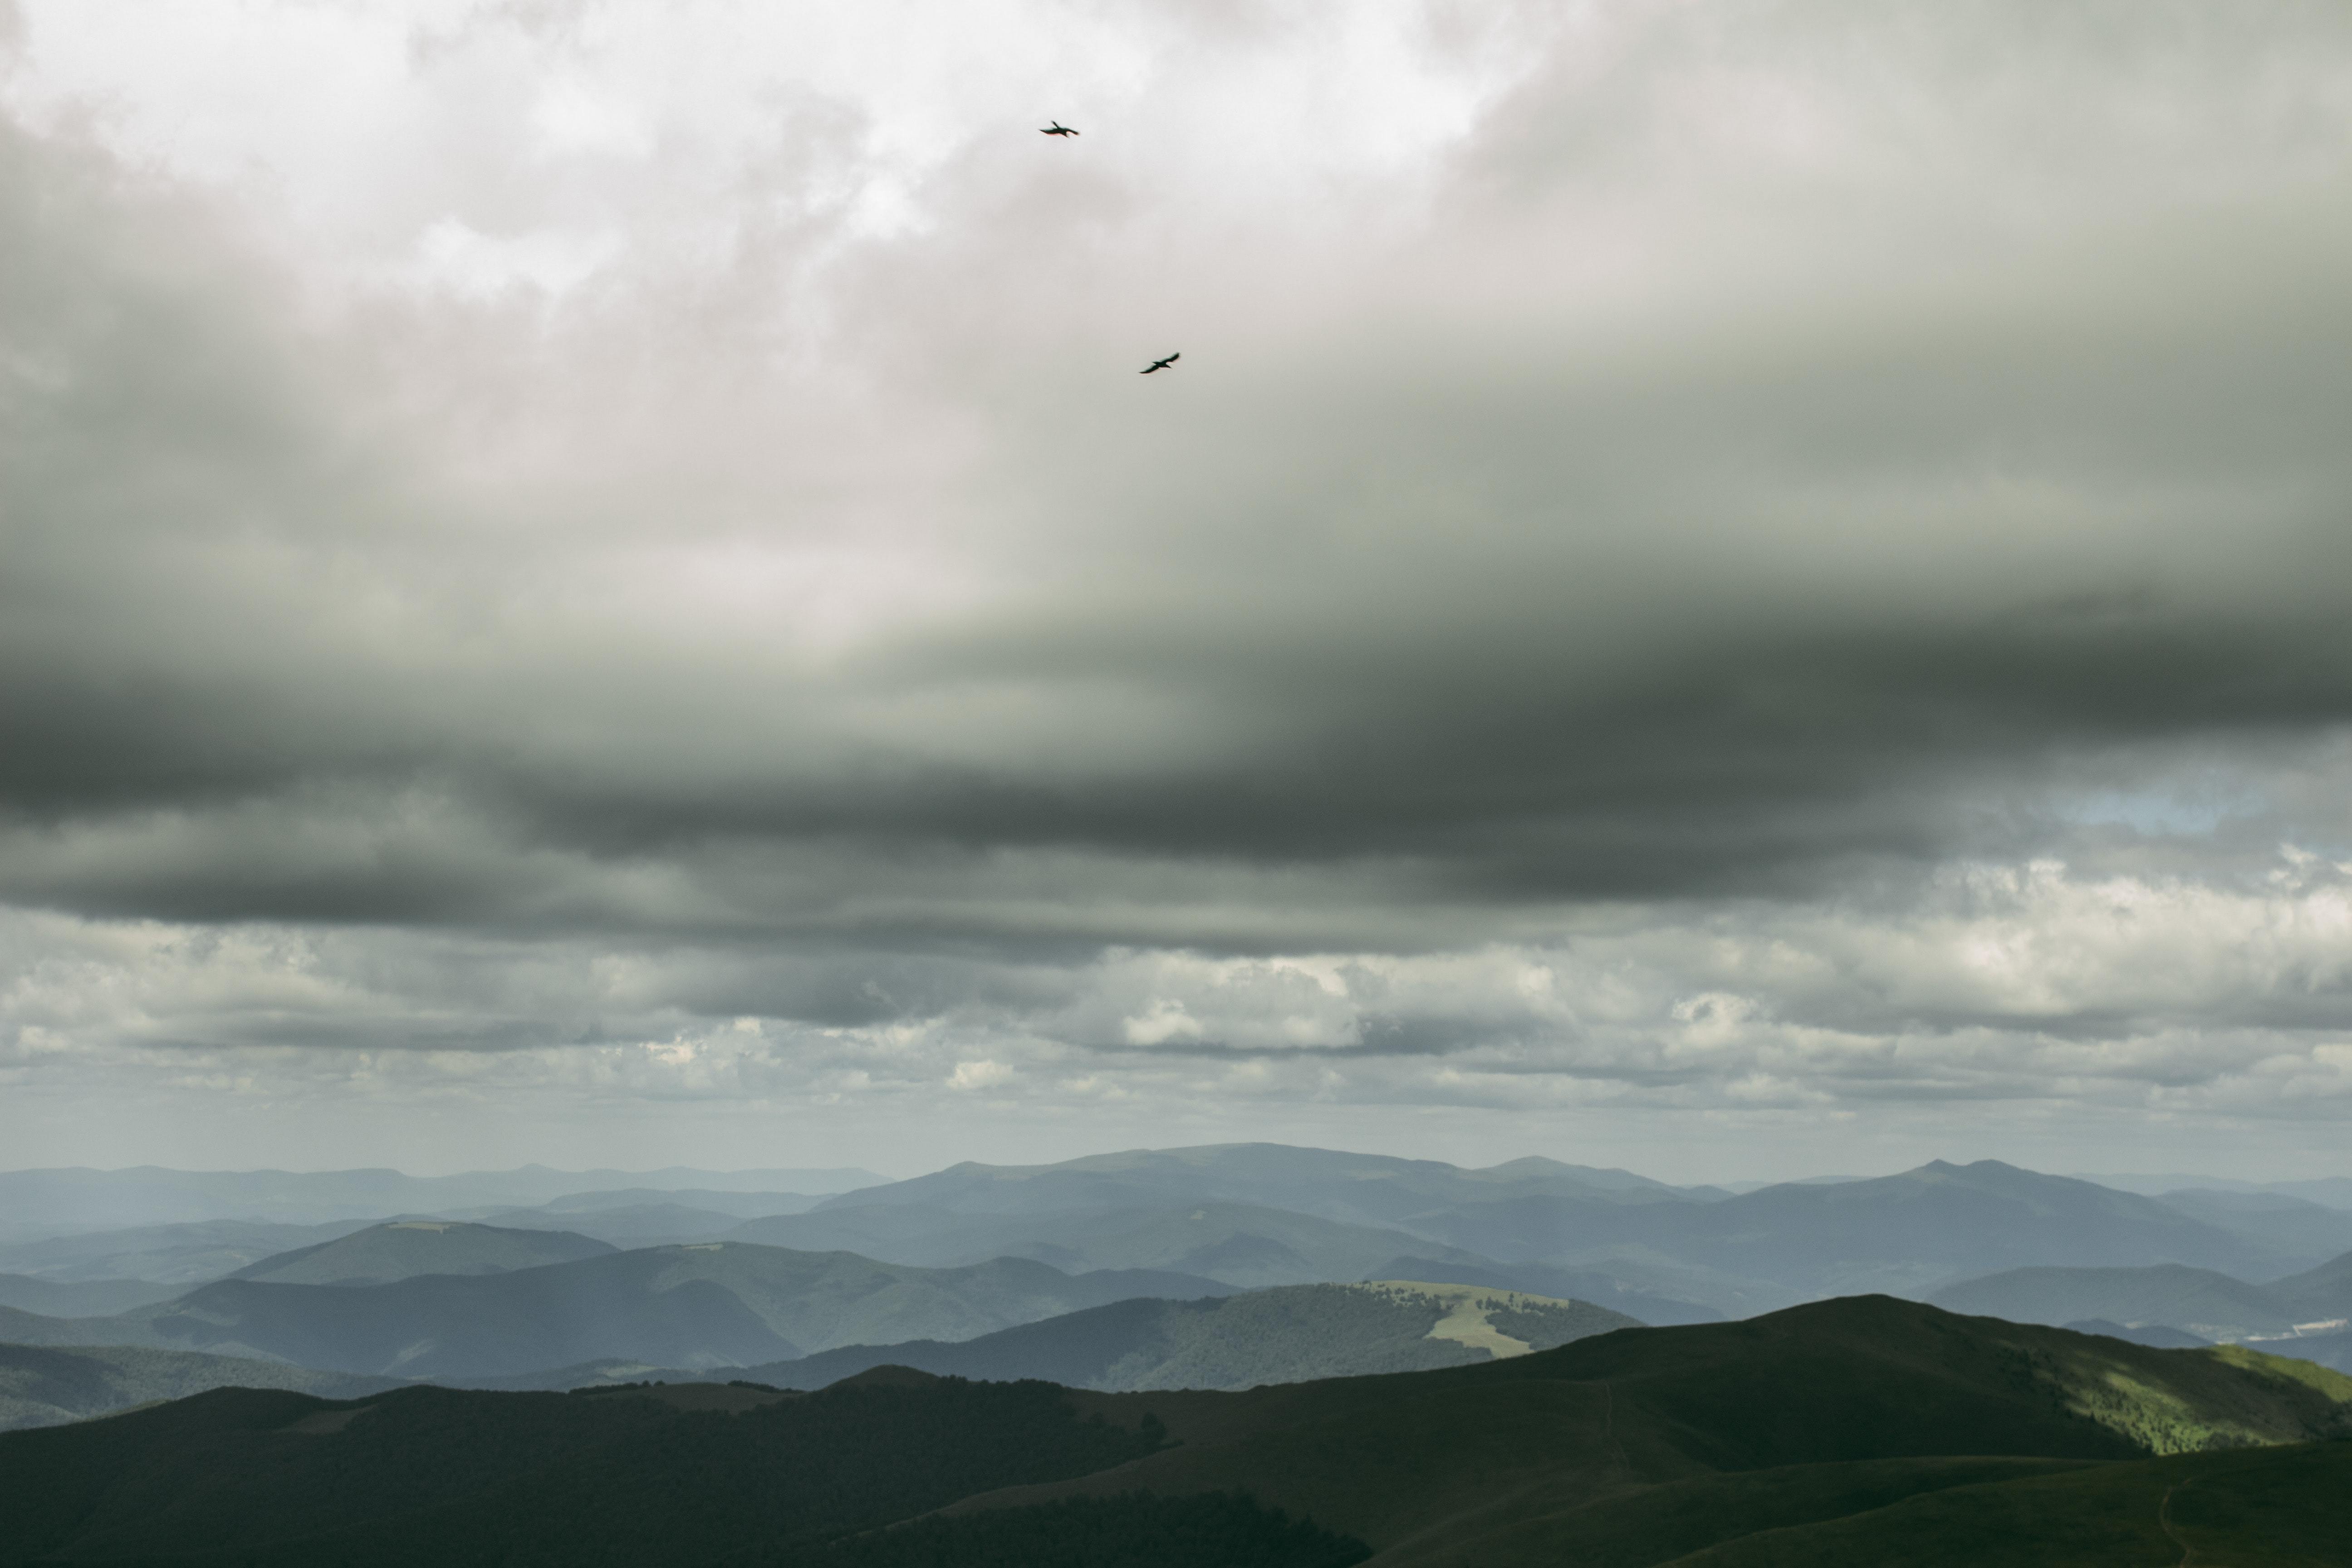 Panoramic shot of the Carpathian Mountains with gray cloudy skies overhead.